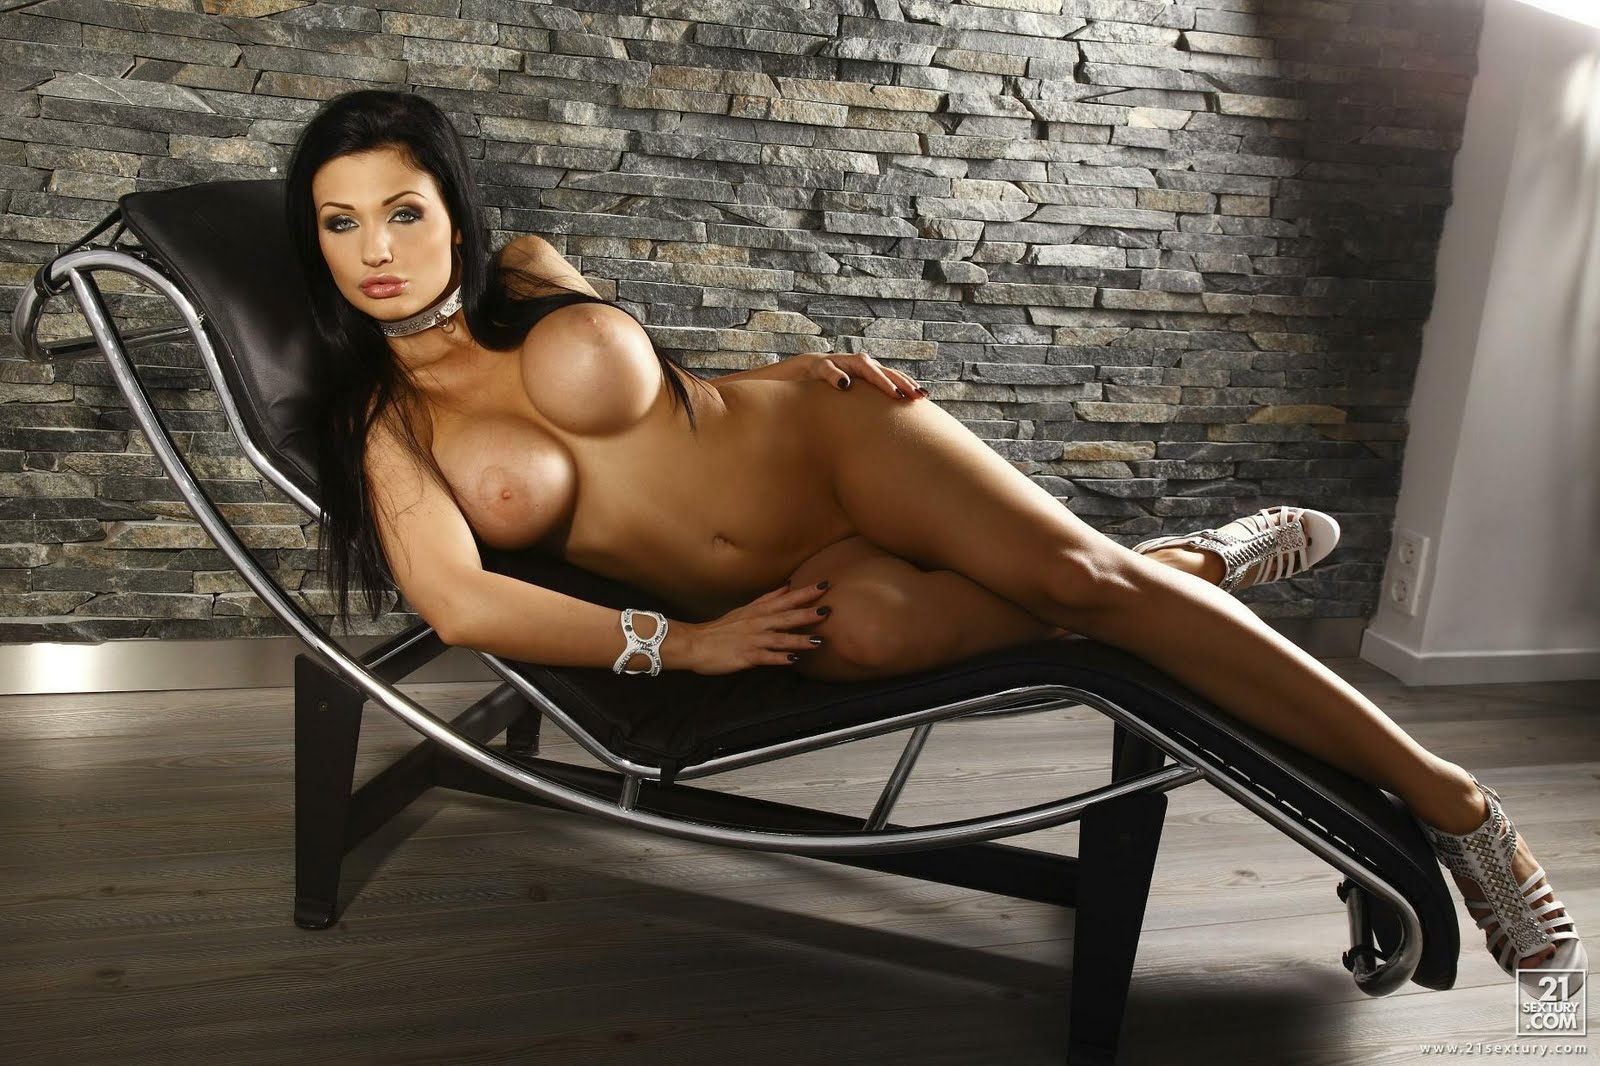 Aletta Ocean Pornstar Nude Sey Body Erotic Wallpaper